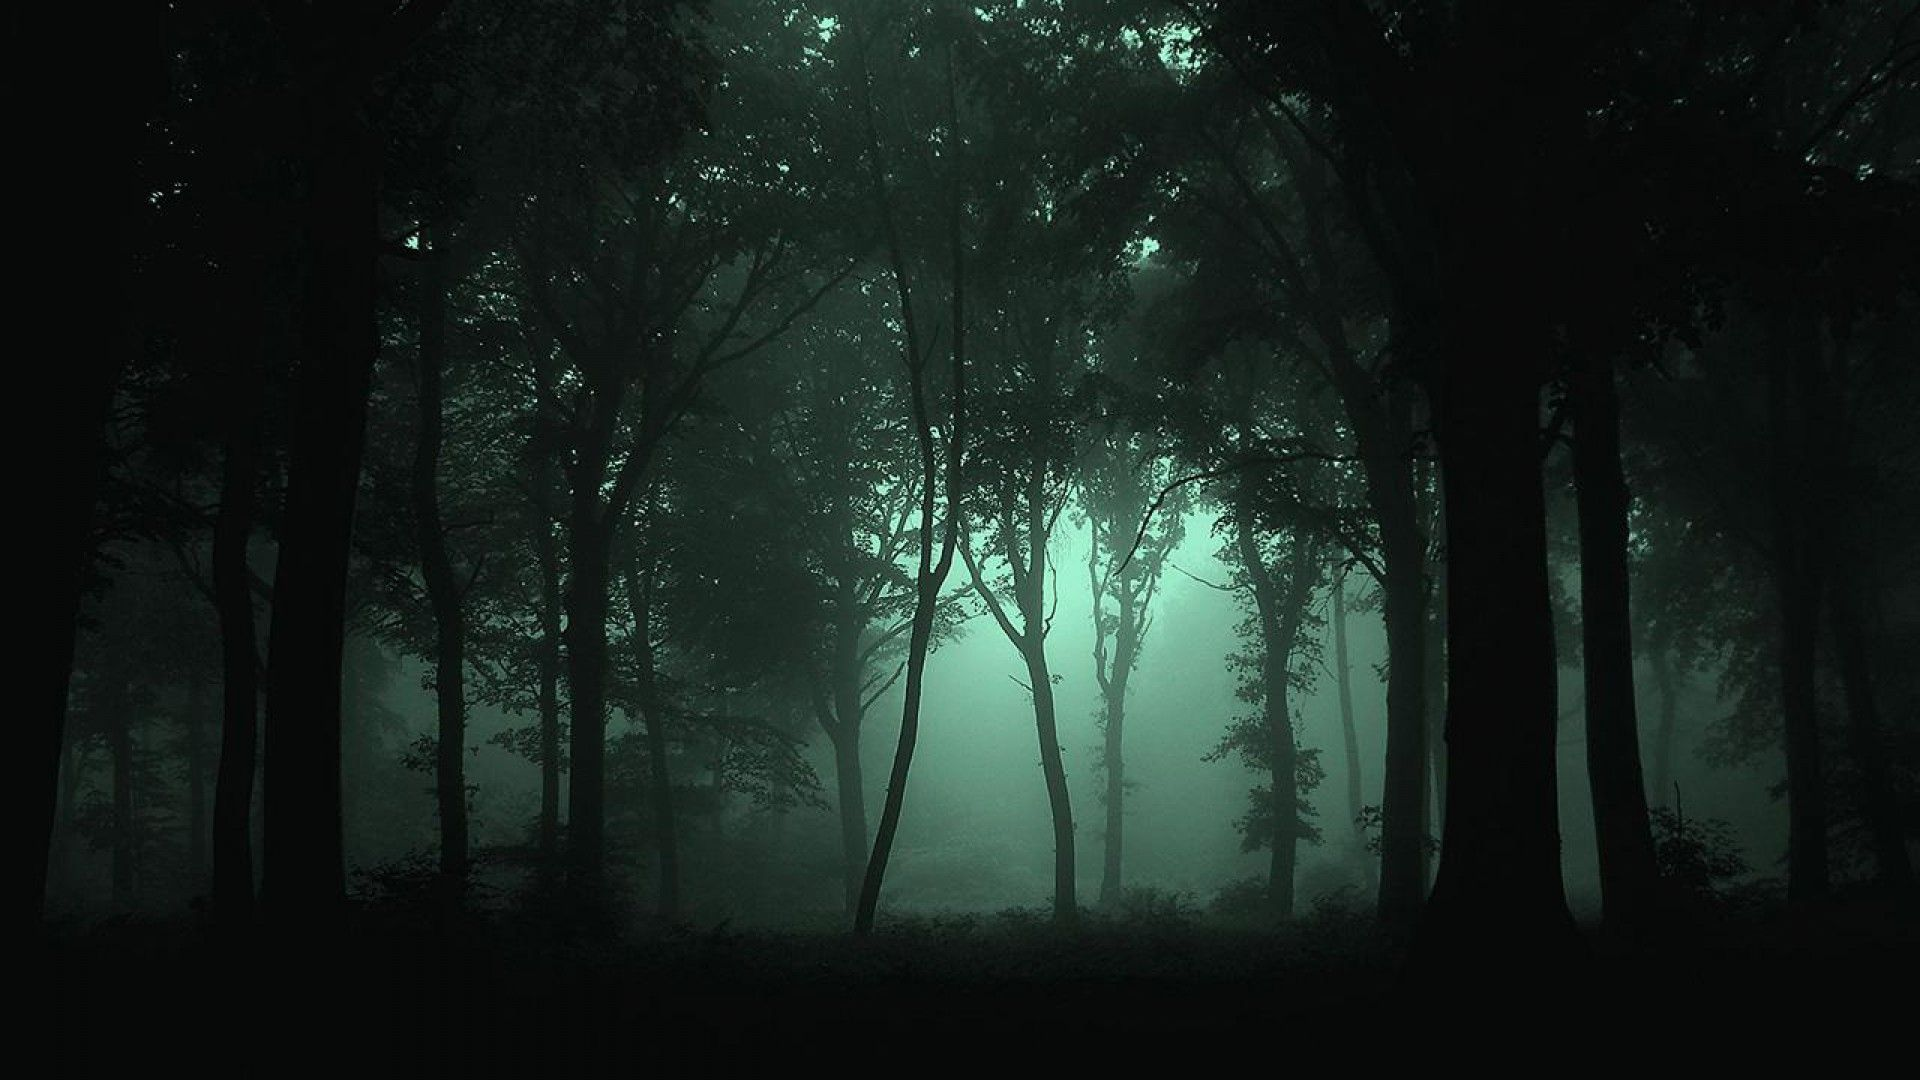 Scary Fog Wallpapers 3d Abstract Wallpapers Floresta Natureza Arte Obscura